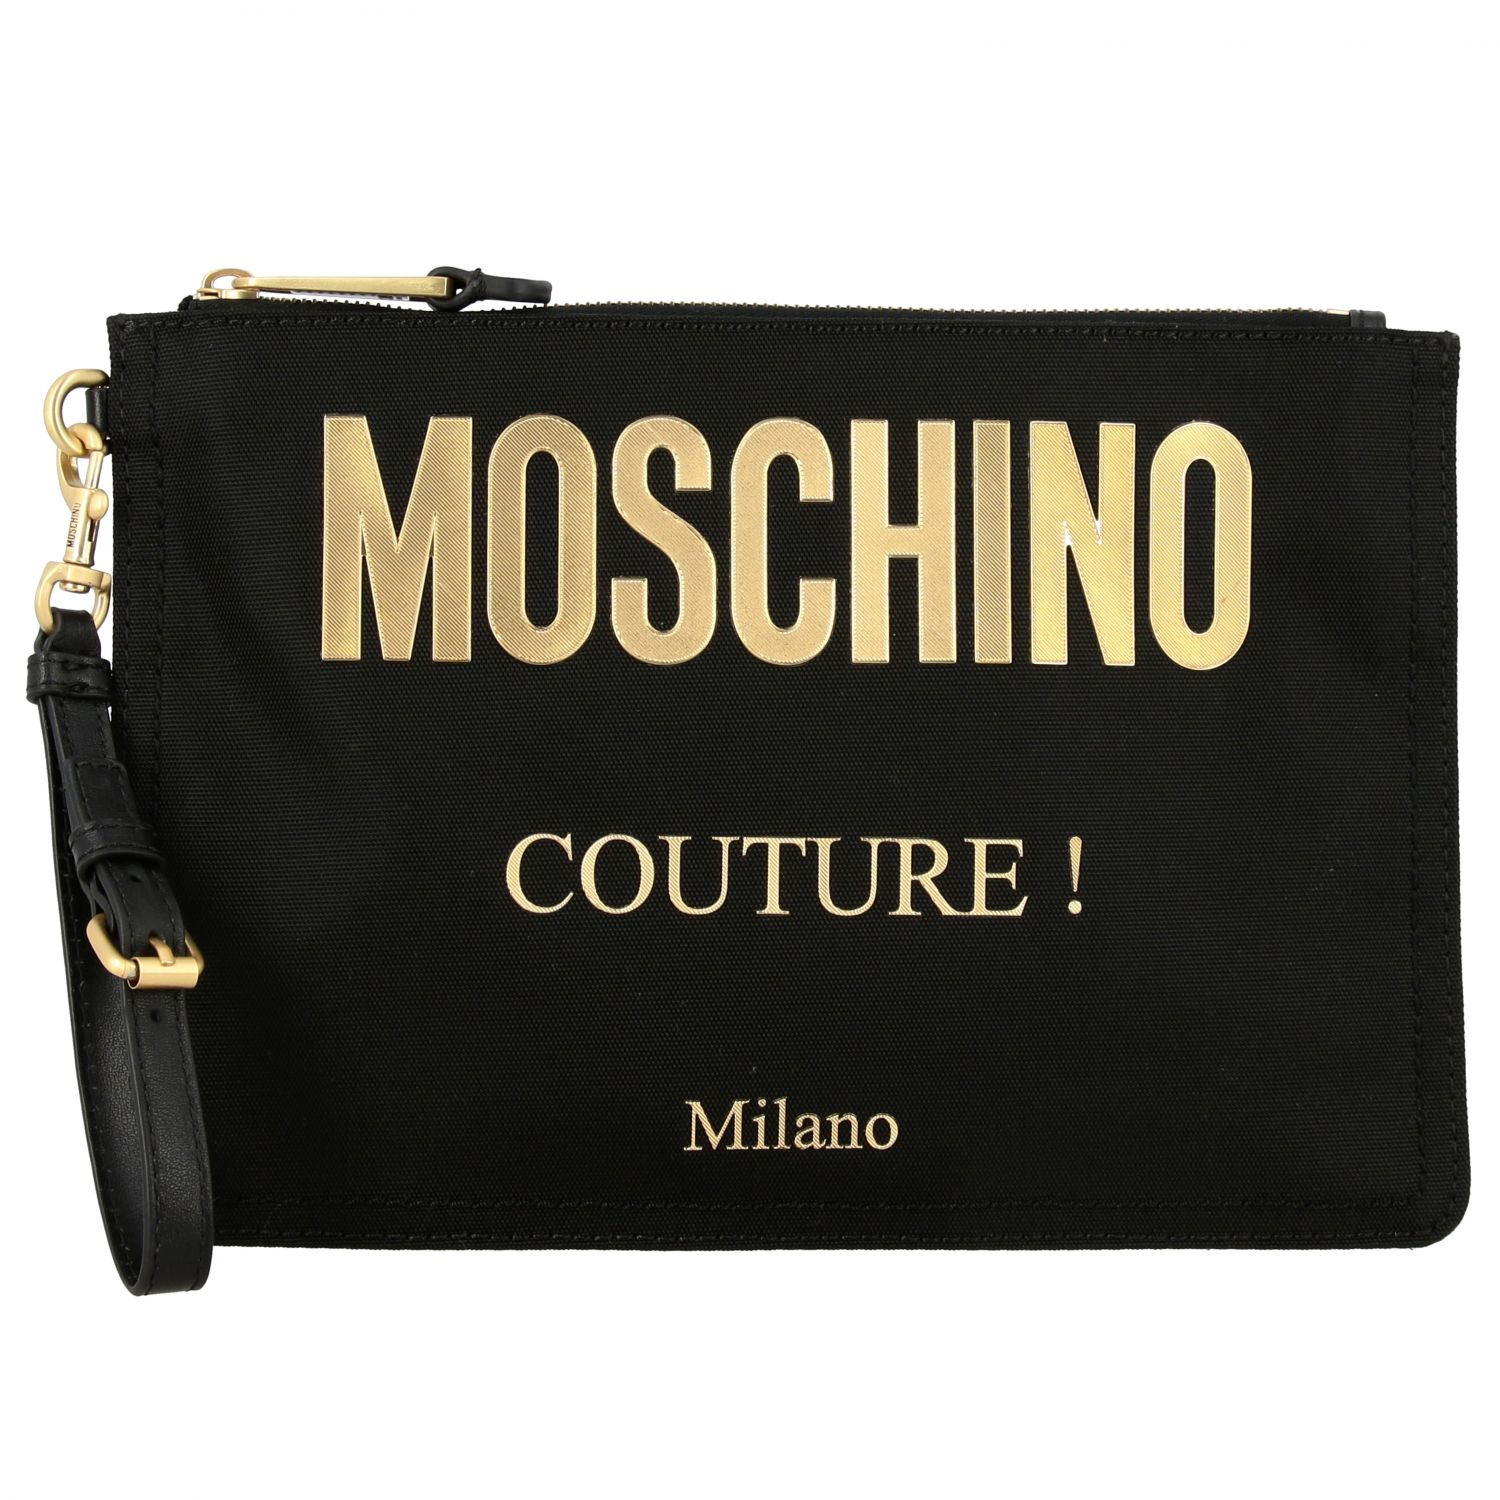 Moschino Couture canvas clutch with laminated logo black 1